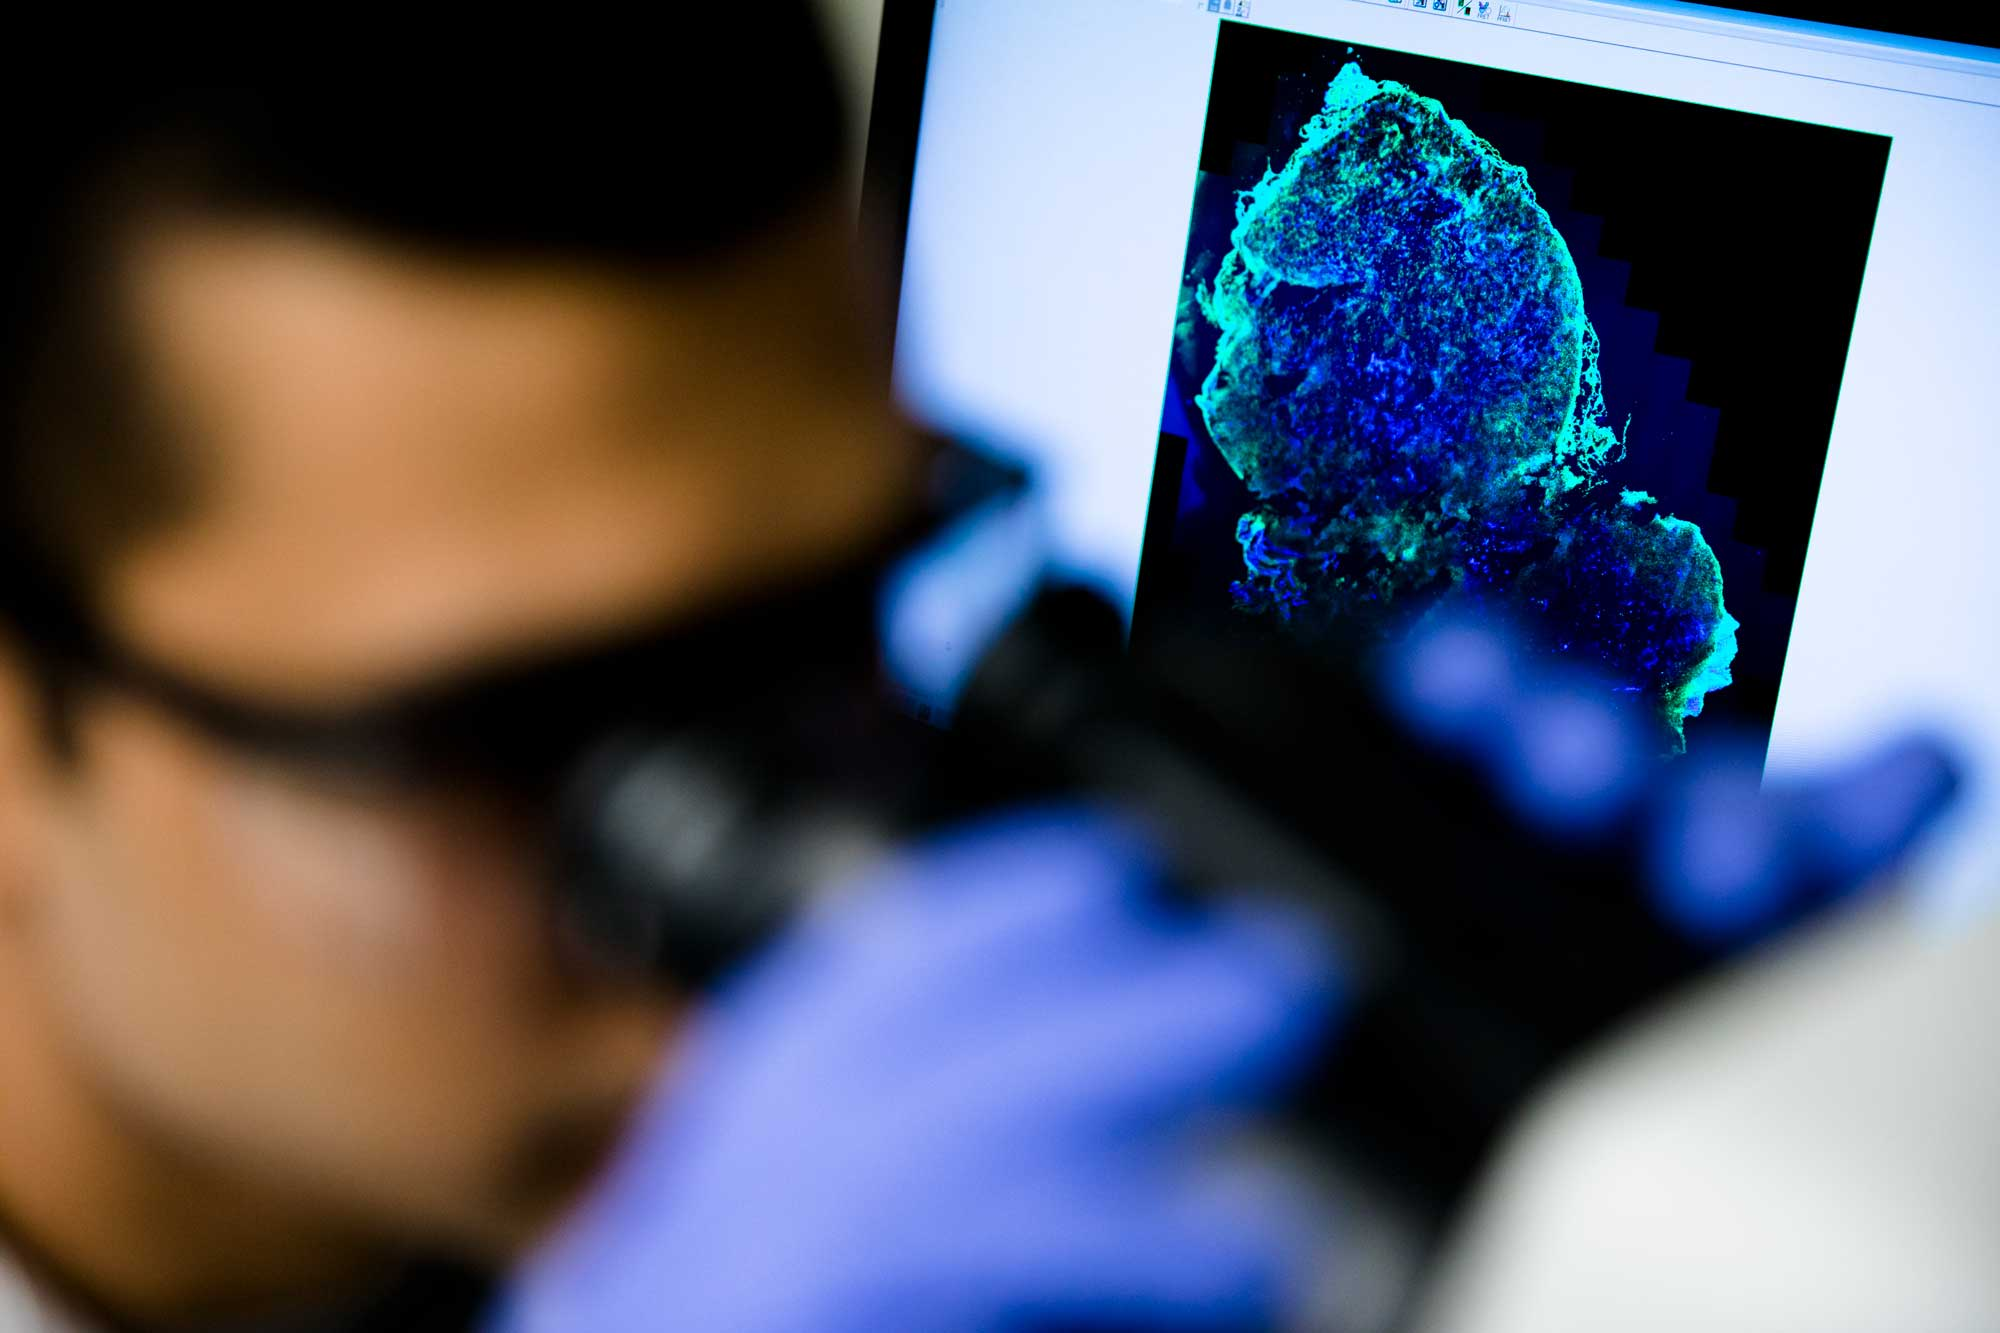 Sumit Bhatnagar, a PhD student in chemical engineering, inspects and analyzes tumor cells used in his research developing a diagnostic screening pill for breast cancer and other diseases under the direction of Greg Thurber, an assistant professor in chemical engineering. The pill would contain a fluorescent imaging agent connected to a targeting molecule that binds to cancerous cells in breast tissue, in order to make earlier and more accurate breast cancer diagnoses. Image credit: Evan Dougherty, Michigan Engineering